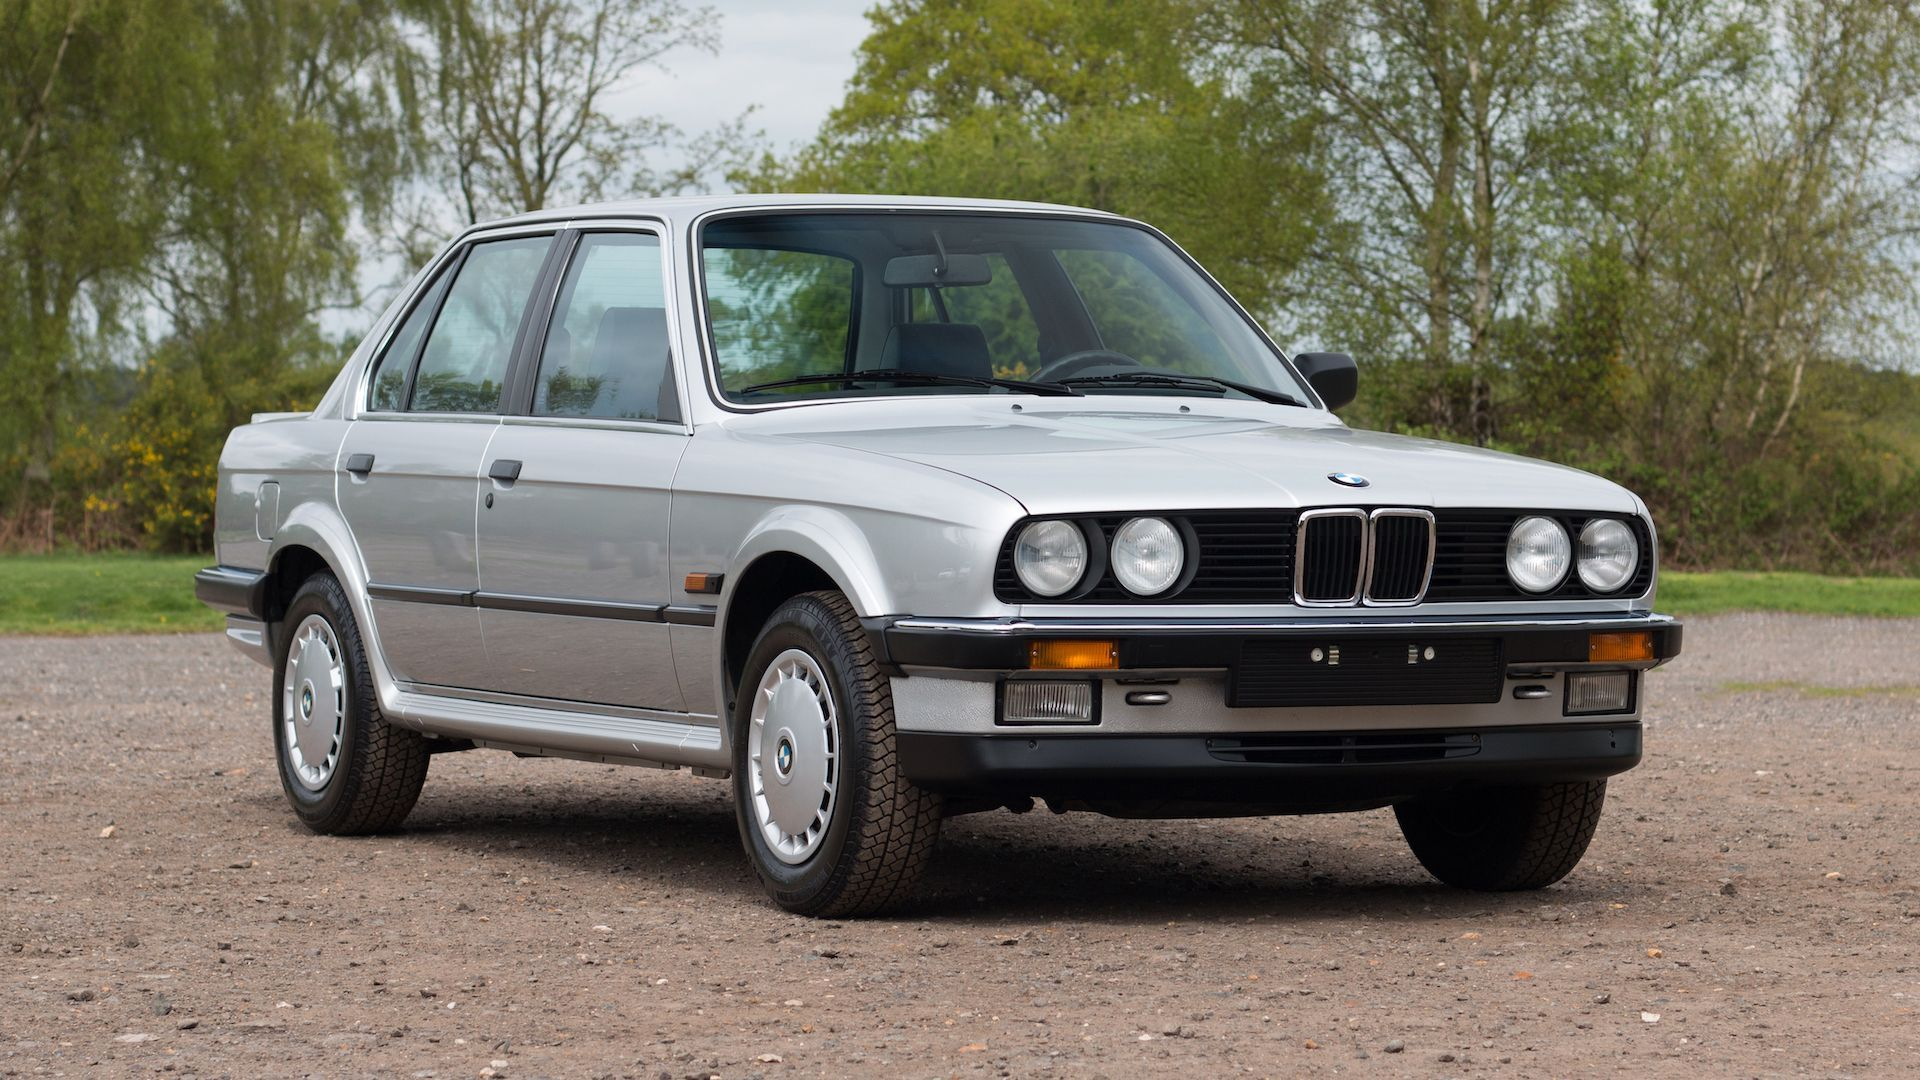 Dealer Selling 1986 BMW 325iX With 325 Miles